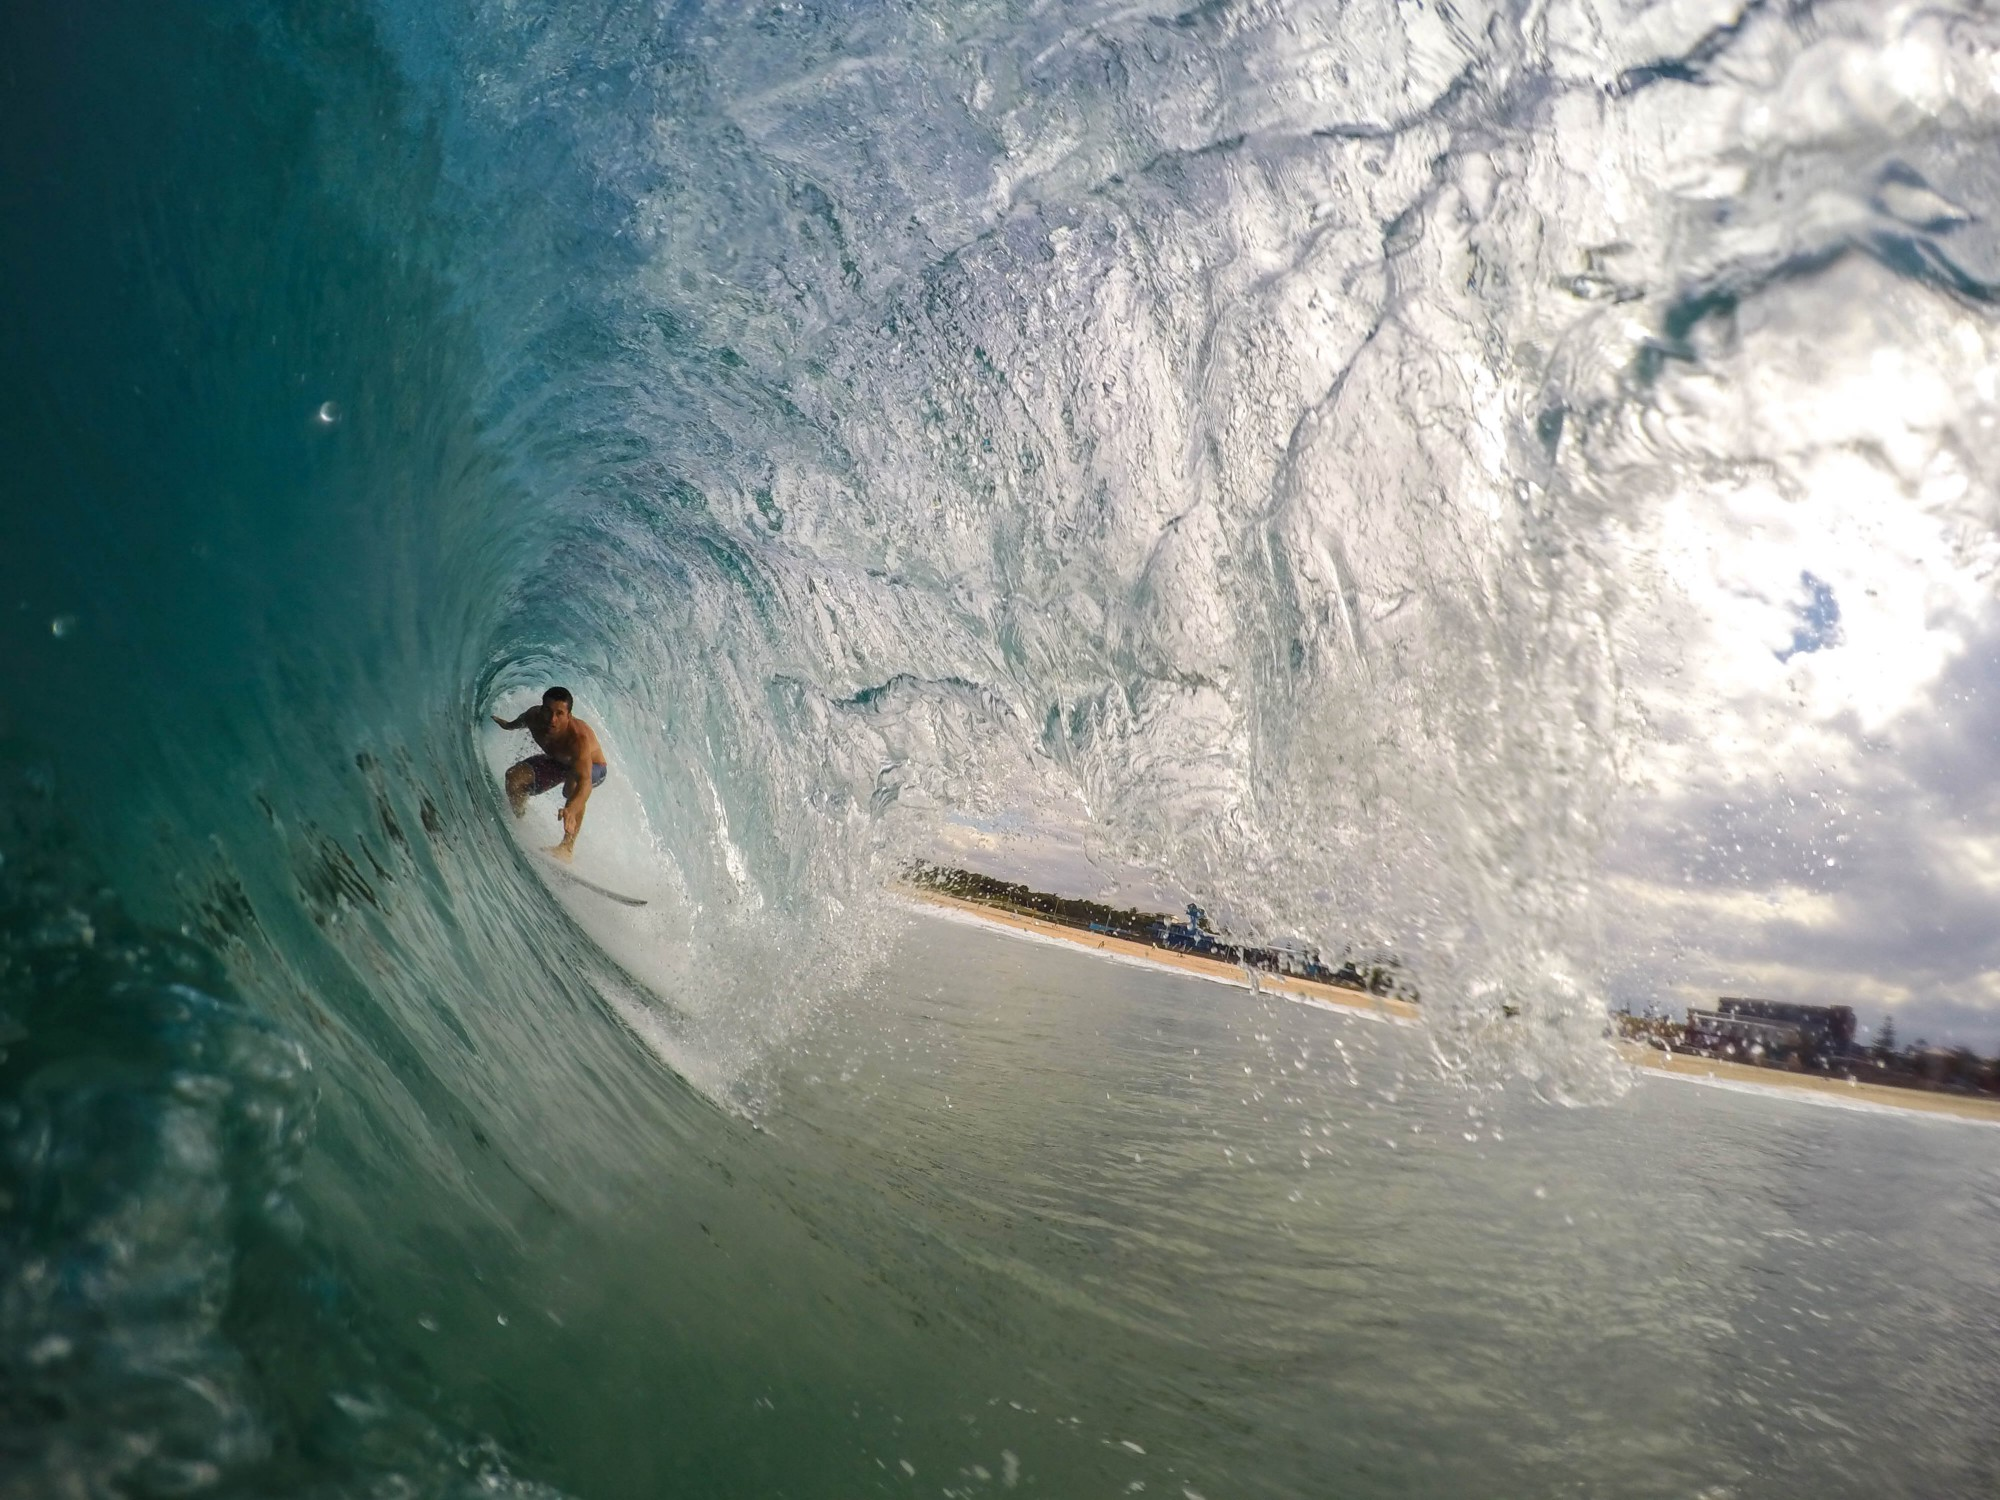 Surfer under a wave in a barrell, with water above him